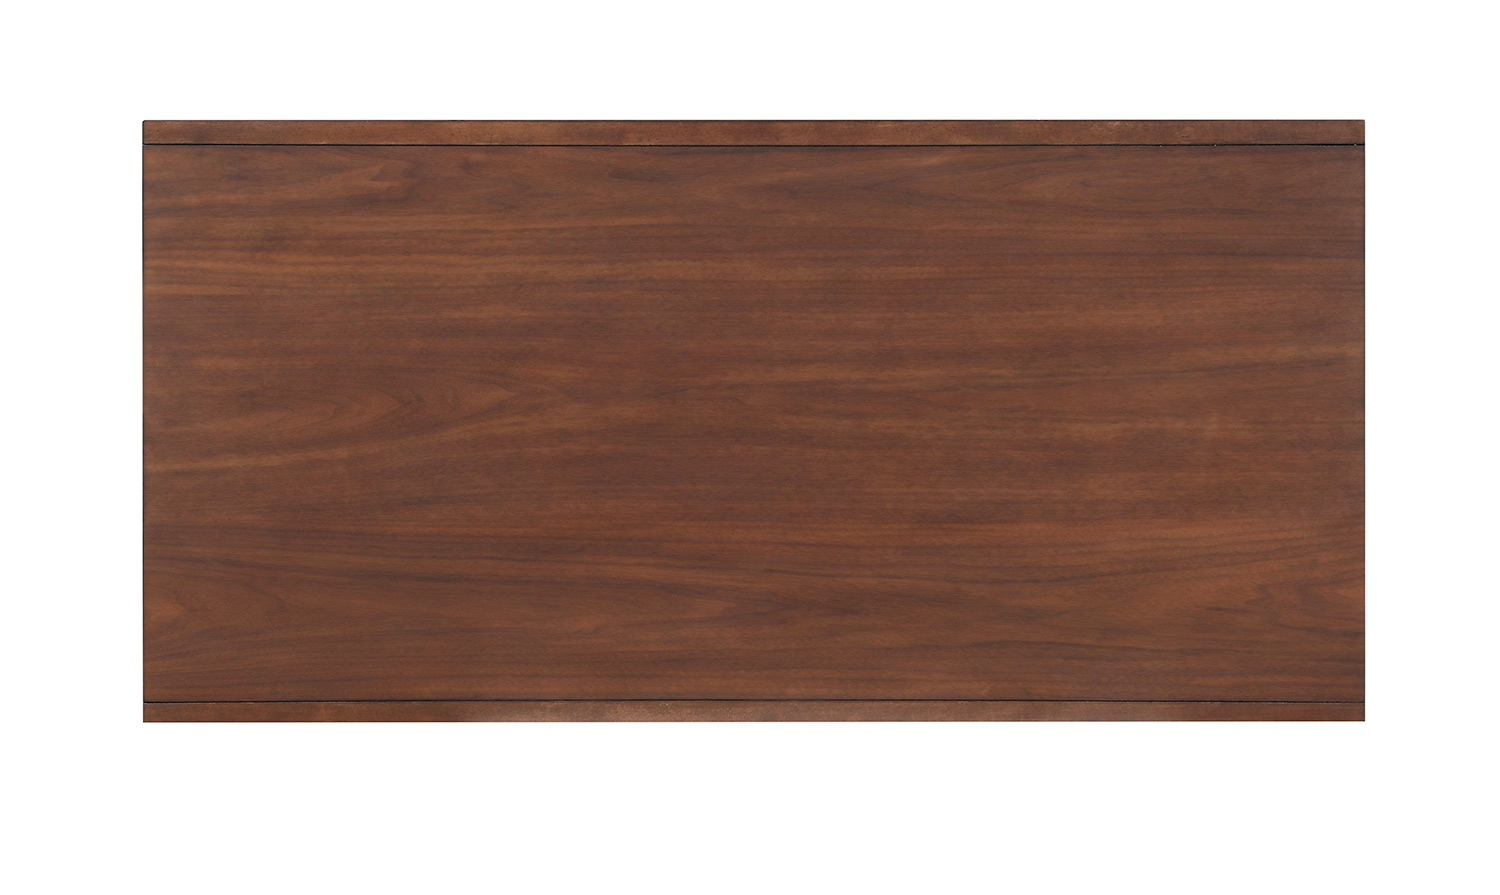 Homelegance Frolic Cocktail/Coffee Table with Two Functional Drawers - Brown